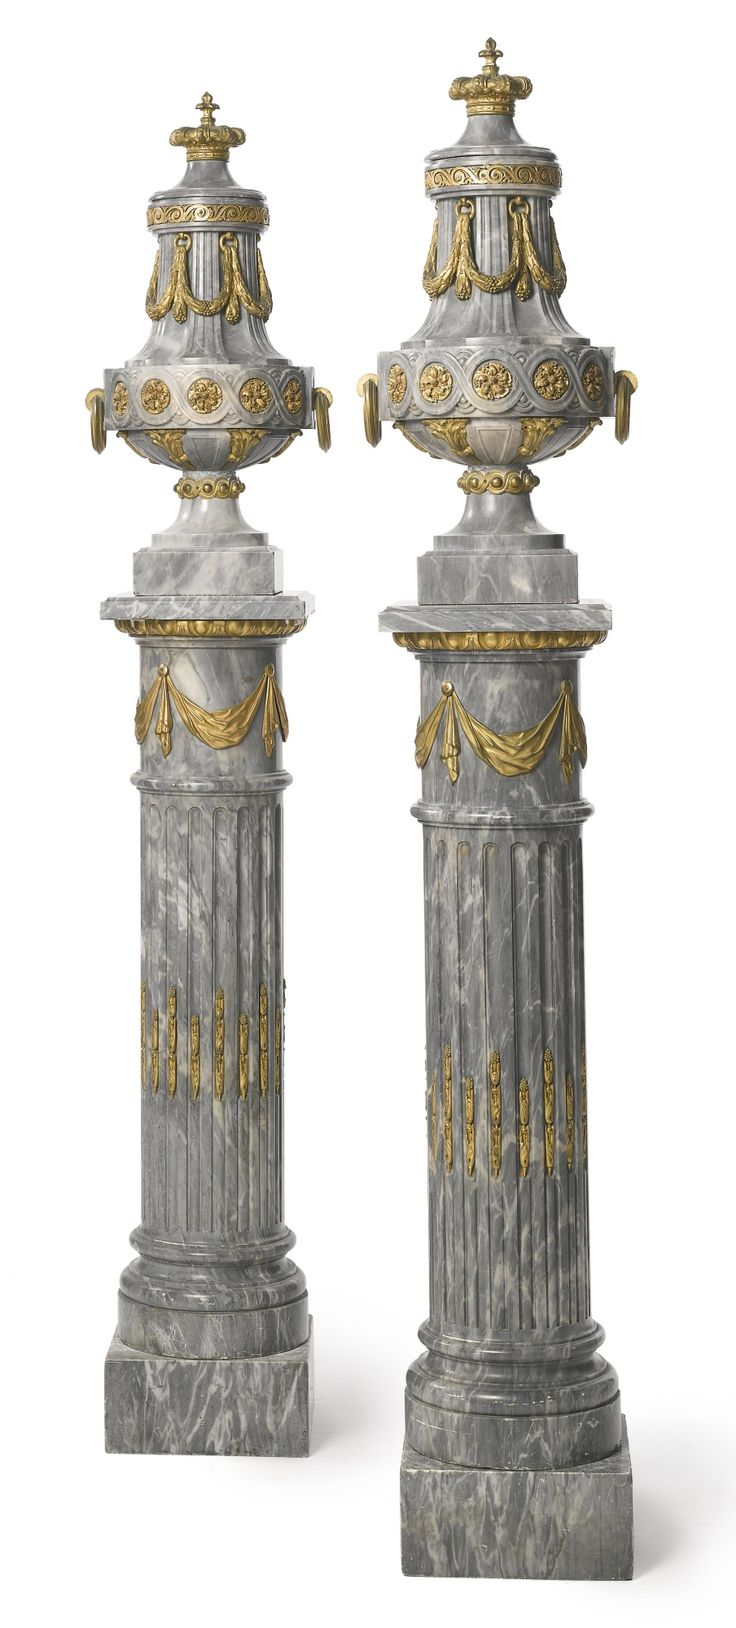 A fine pair of Louis XVI style gilt-bronze mounted…